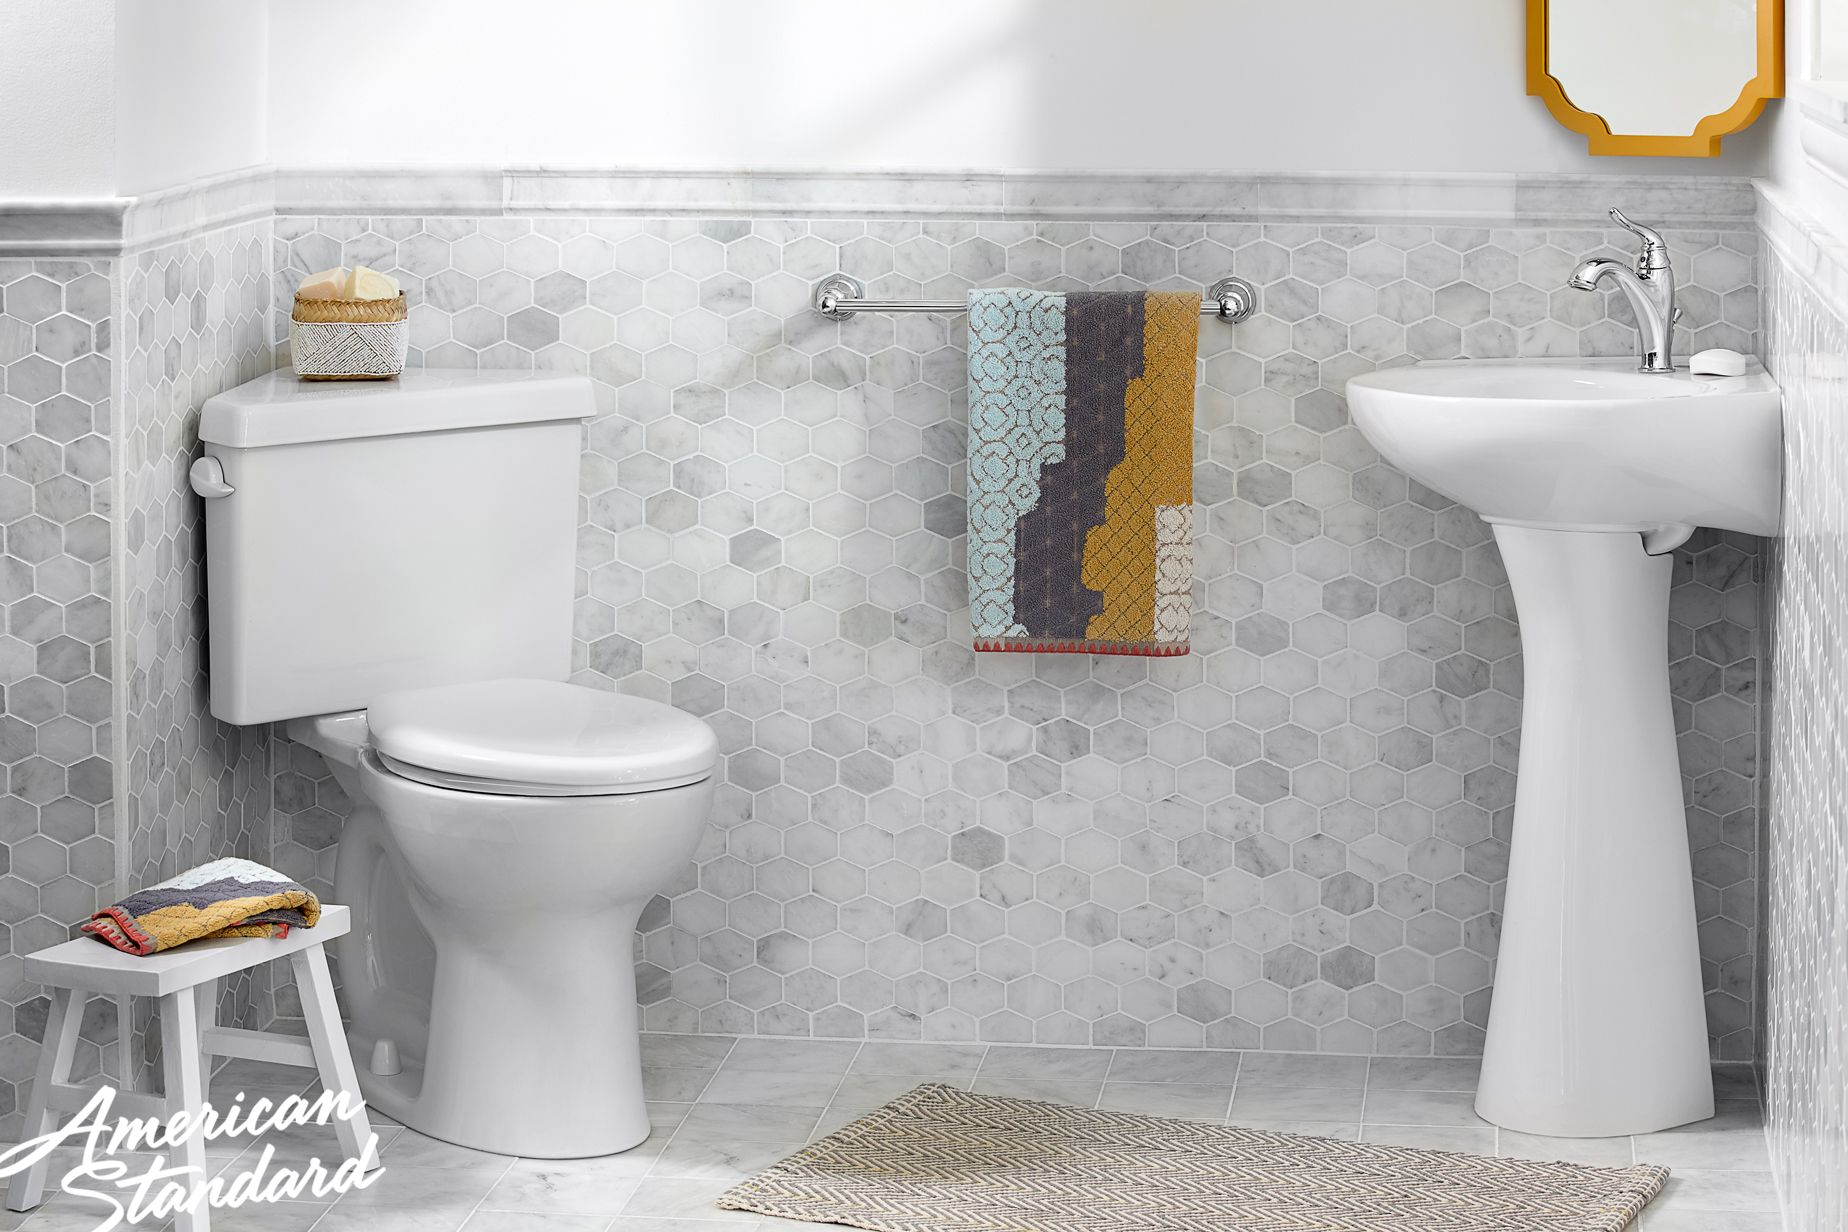 The Compact Triangle Cadetr Pro And Cornicetm Pedestal Sink